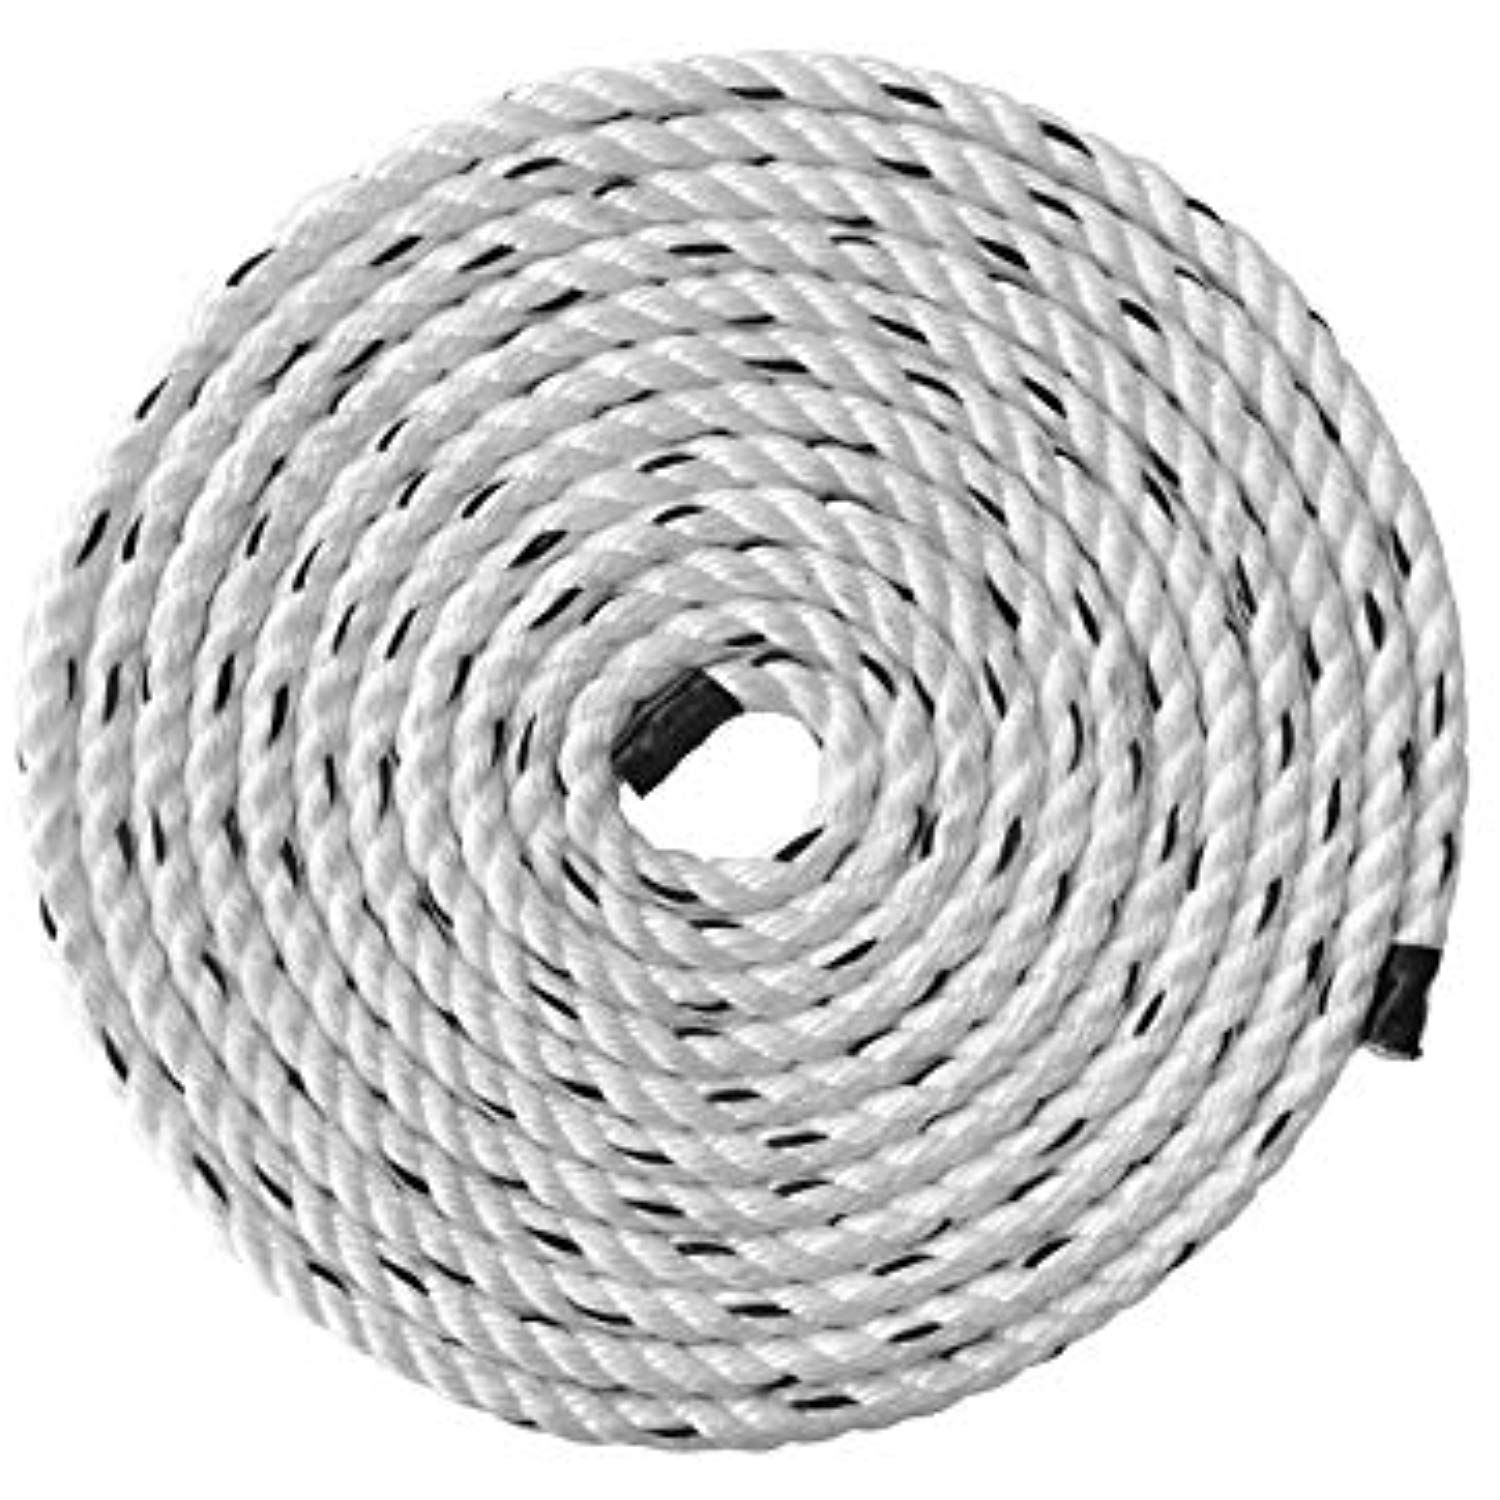 Pelican Rope Poly Dacron Rope 1 2 Inch A Twisted 3 Strand Composite Line With Polypropylene Core Moisture Chemical Boatings Poly Twist